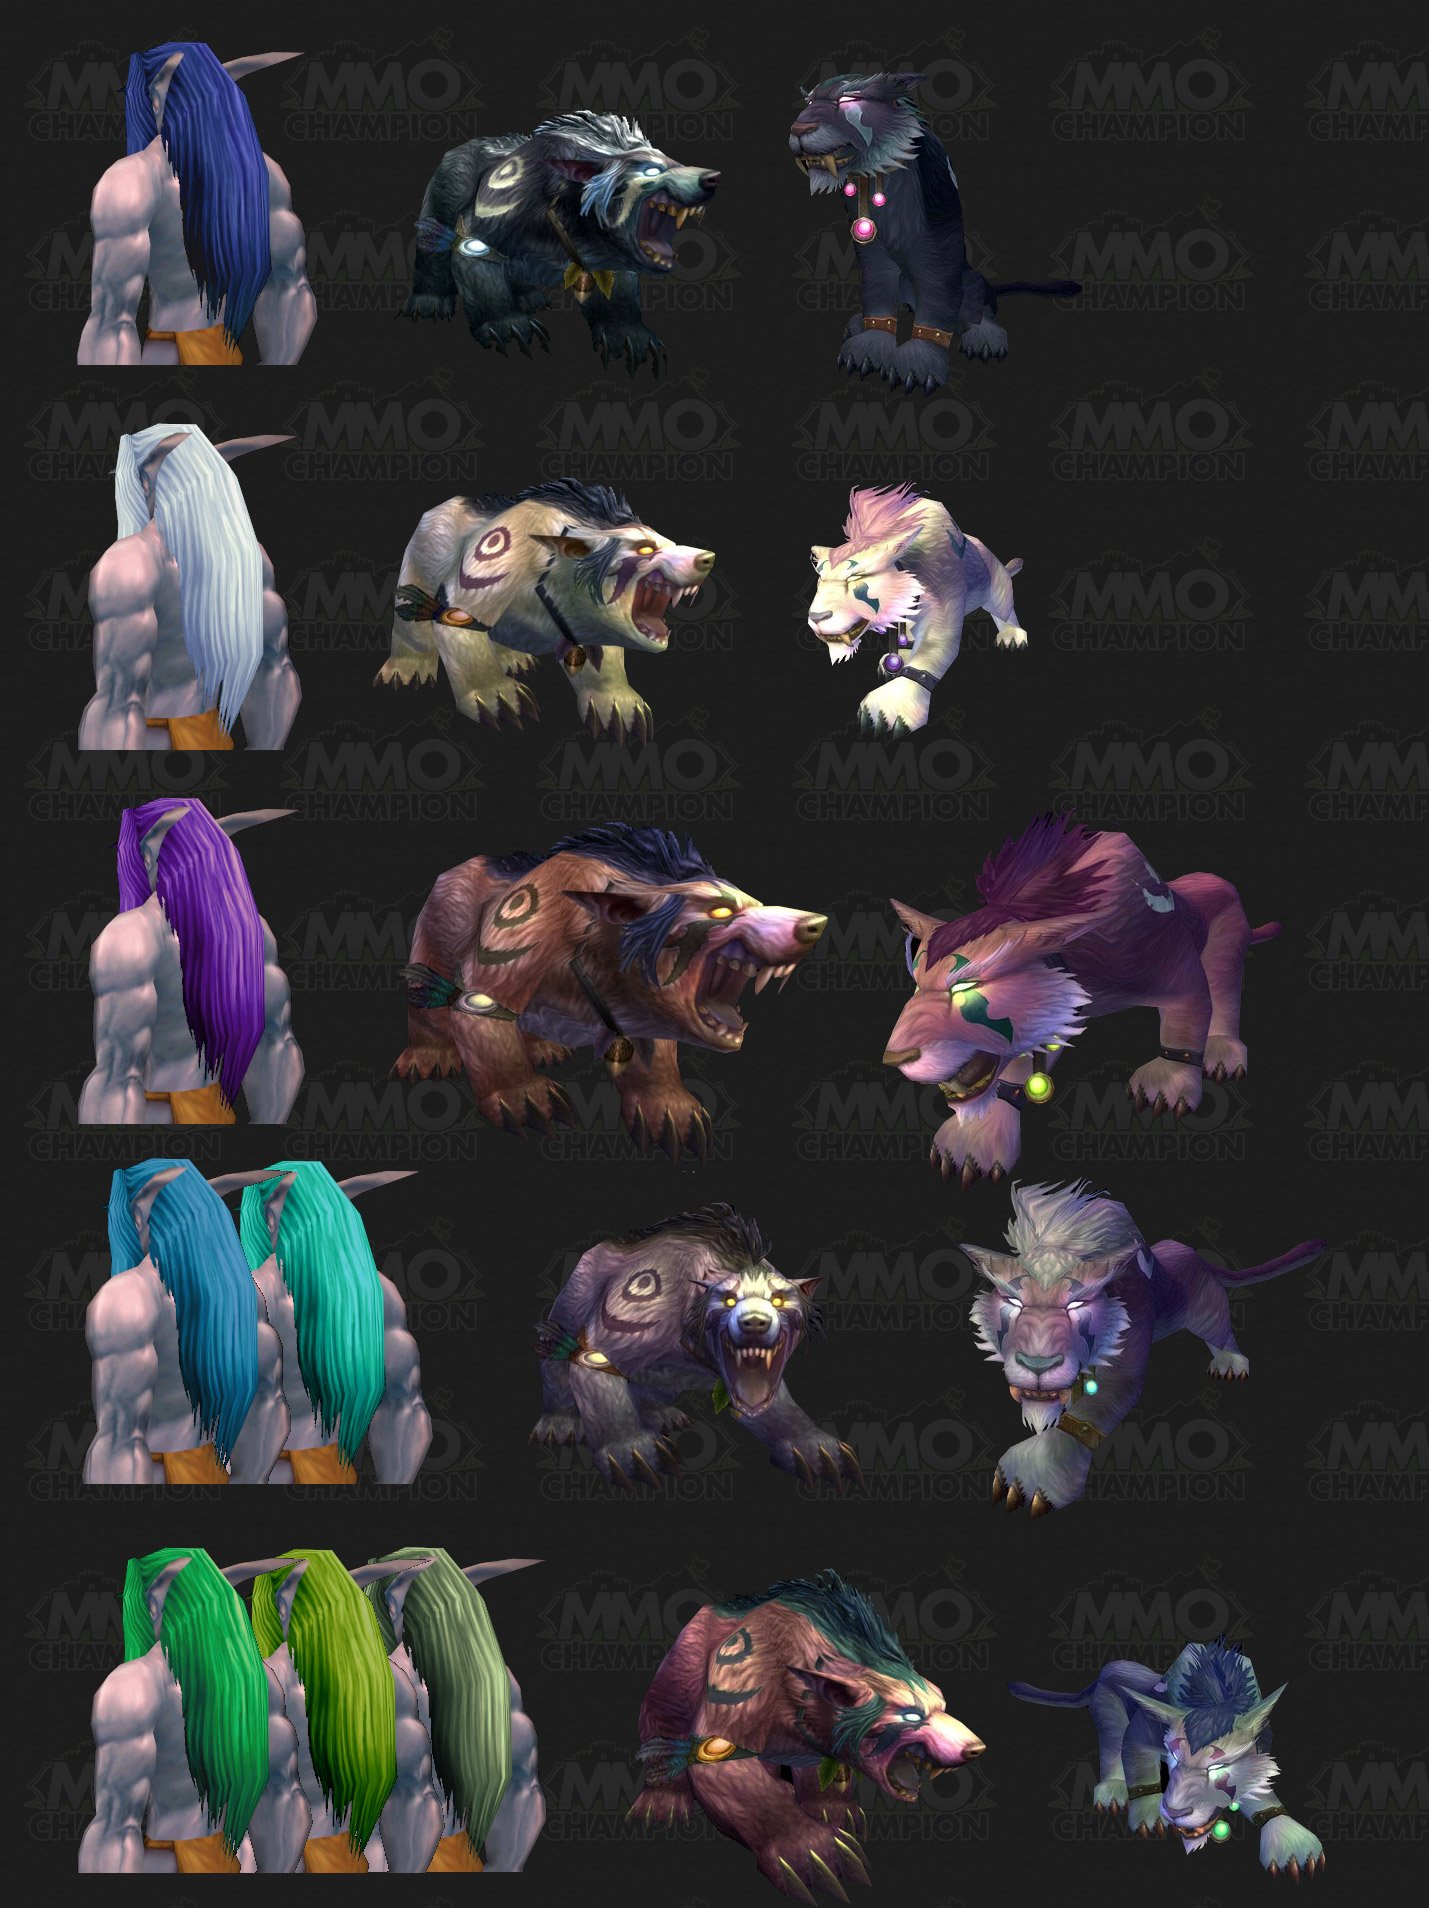 Zarhym explains druid form colour combos night elves nvjuhfo Choice Image